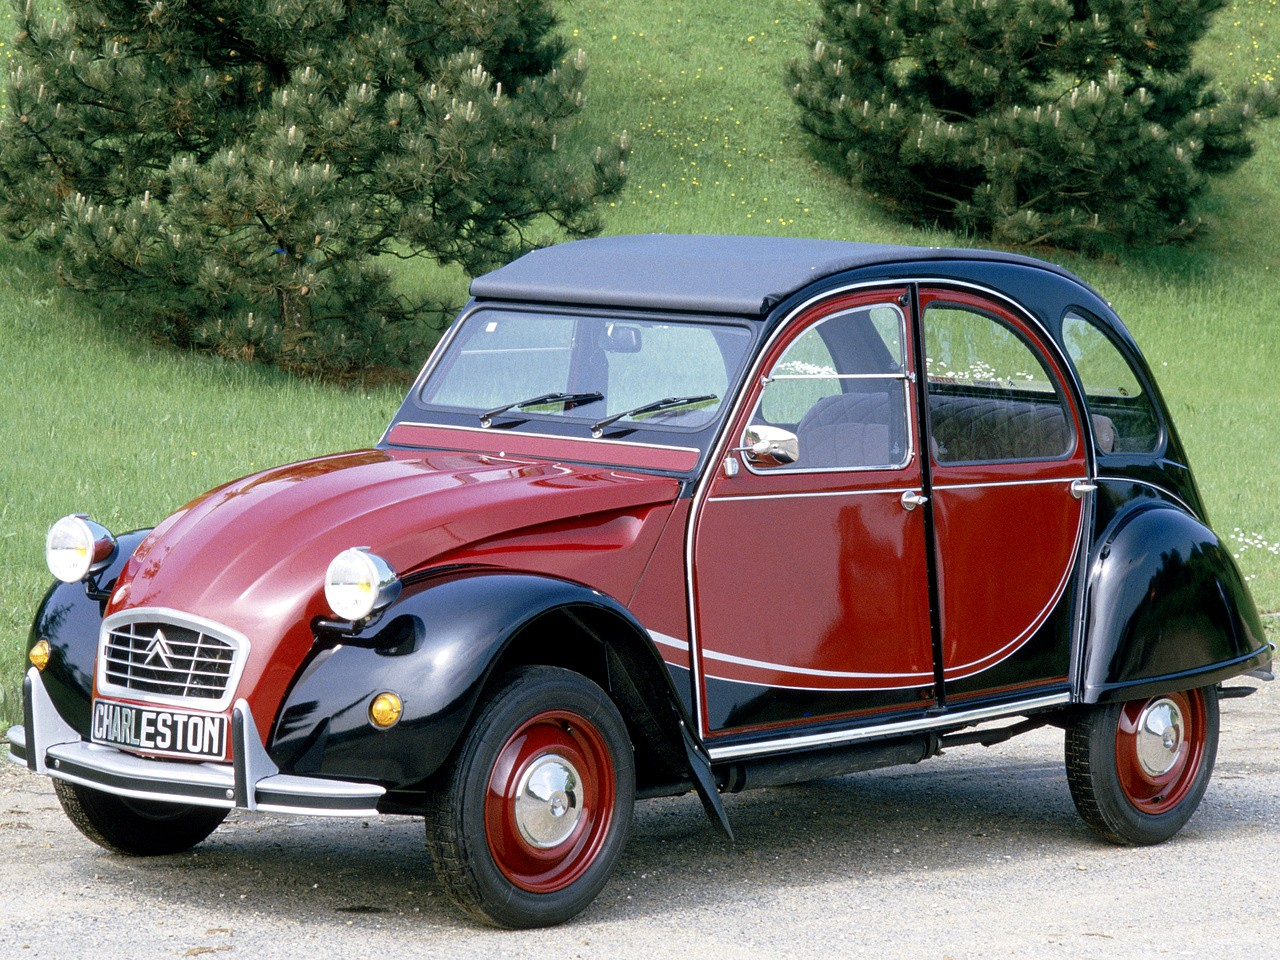 citroen 2cv 1949 1950 1951 1952 1953 1954 1955 1956 1957 1958 1959 1960 1961 1962. Black Bedroom Furniture Sets. Home Design Ideas